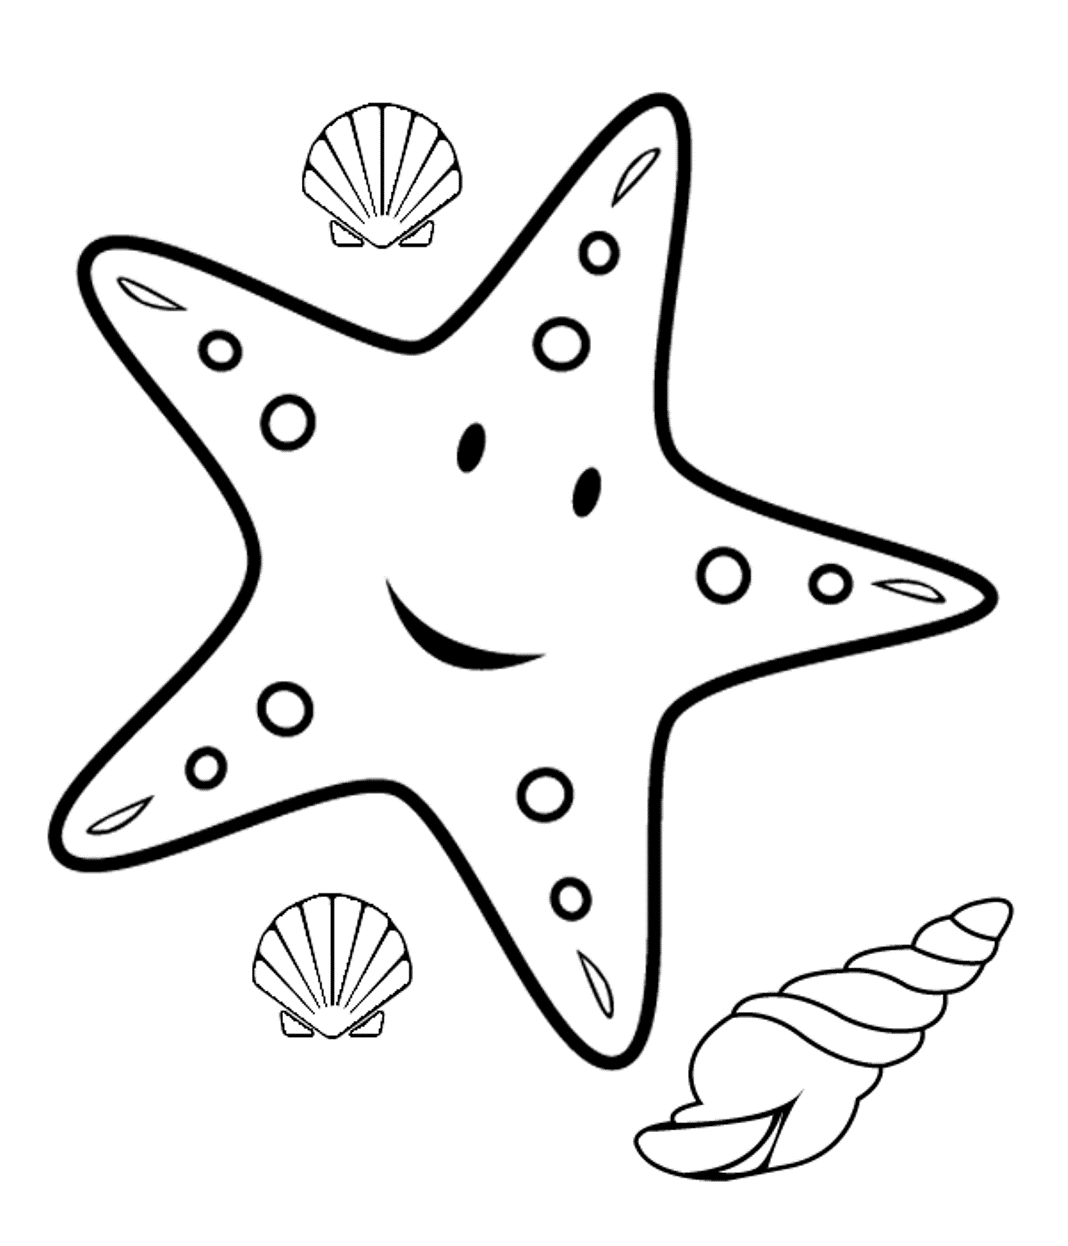 Starfish clipart black and white Fresh clipart black and.